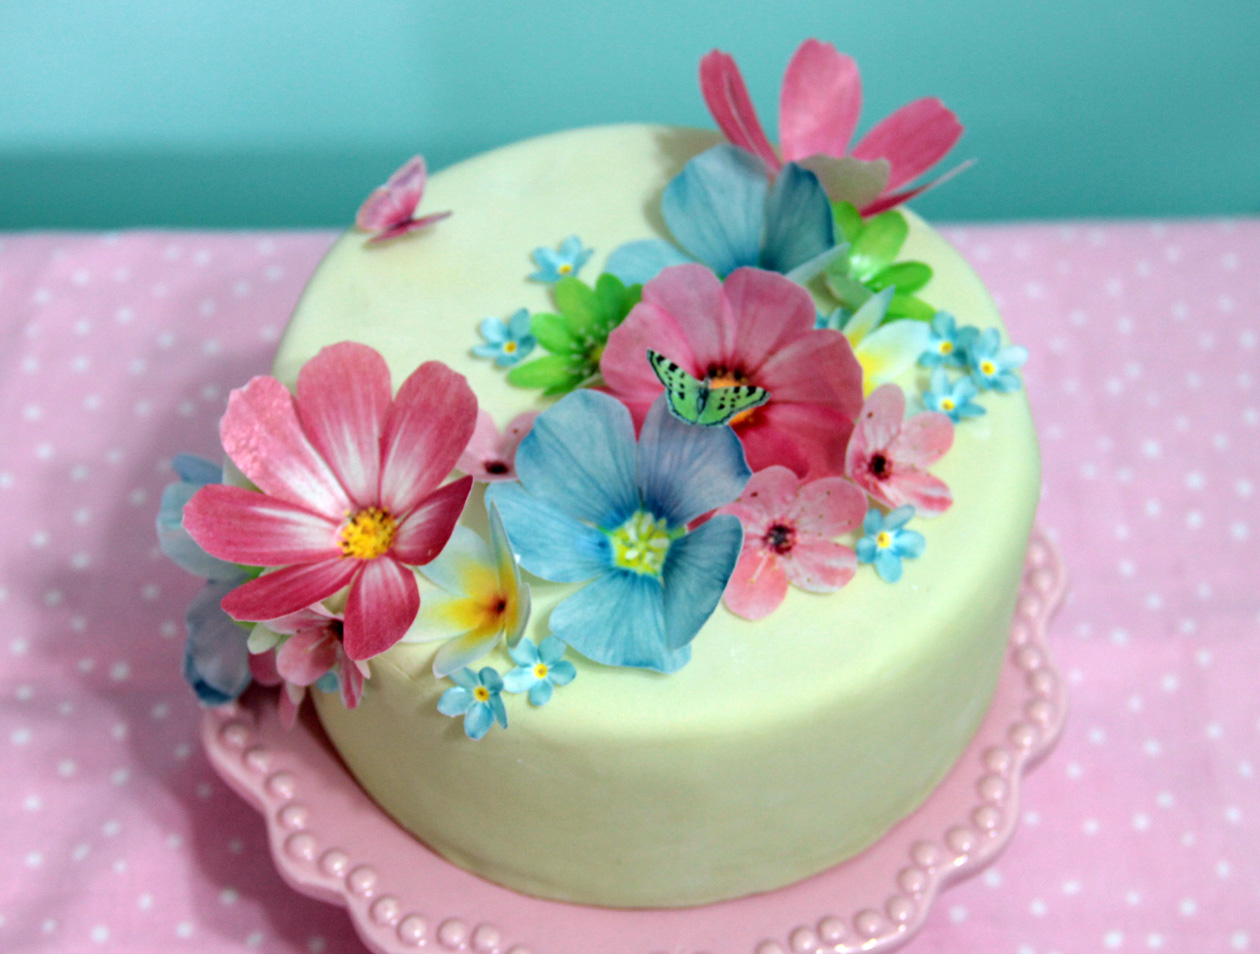 Wafer Flowers Cake Decorations